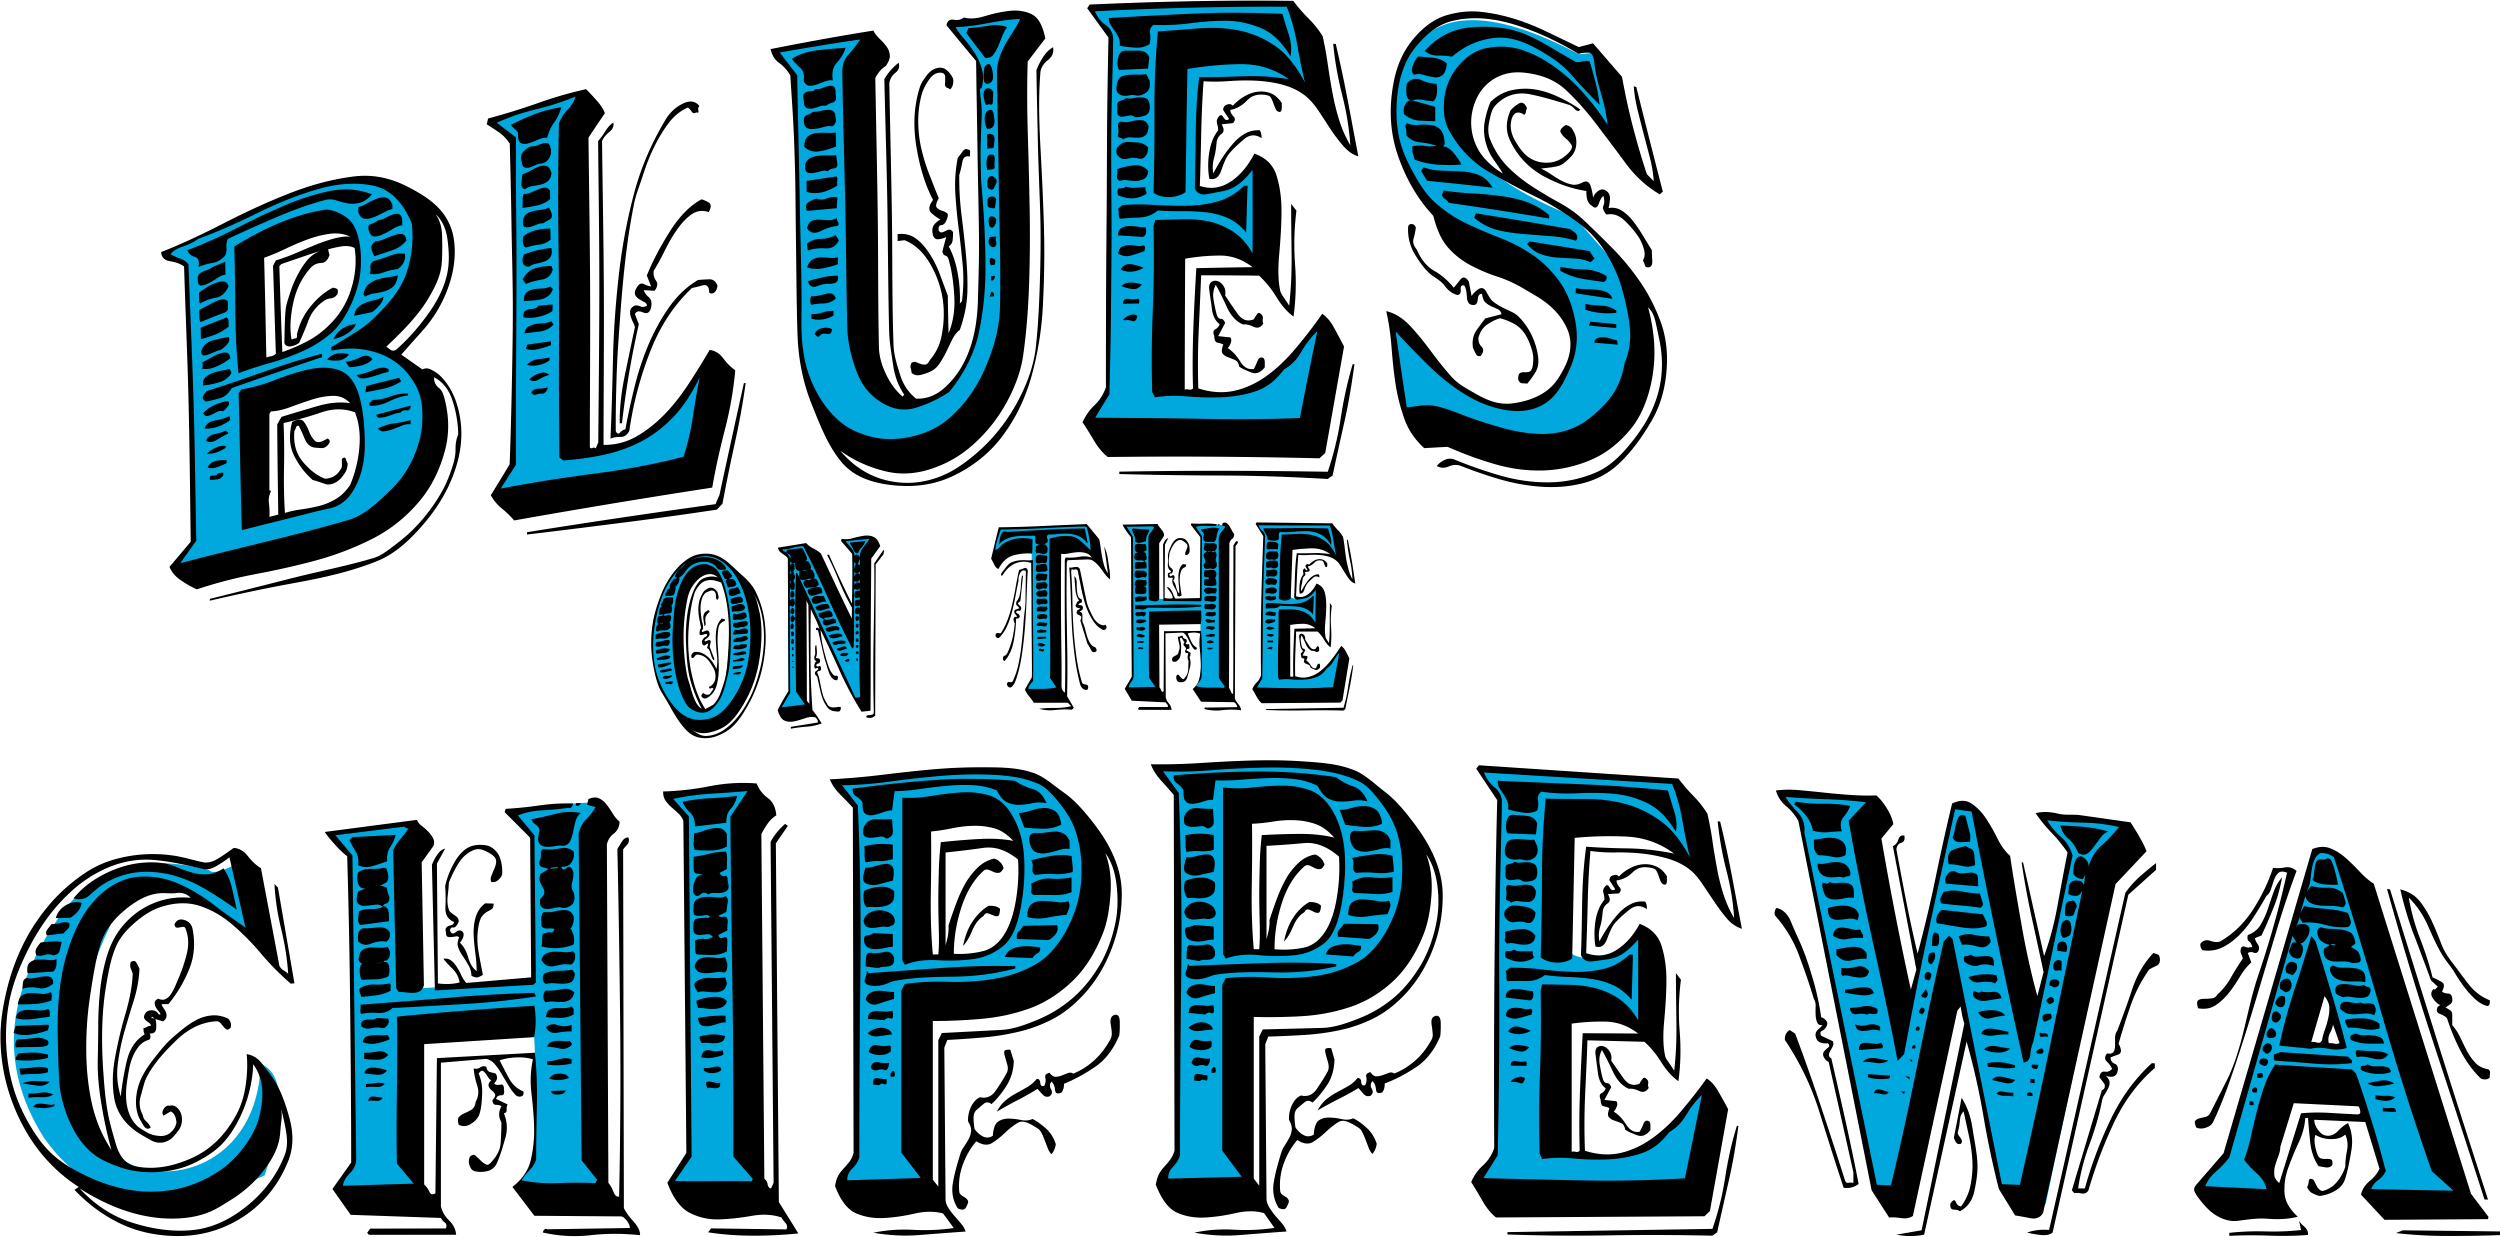 Original Blues on the Chippewa logo. High-res transparent png file